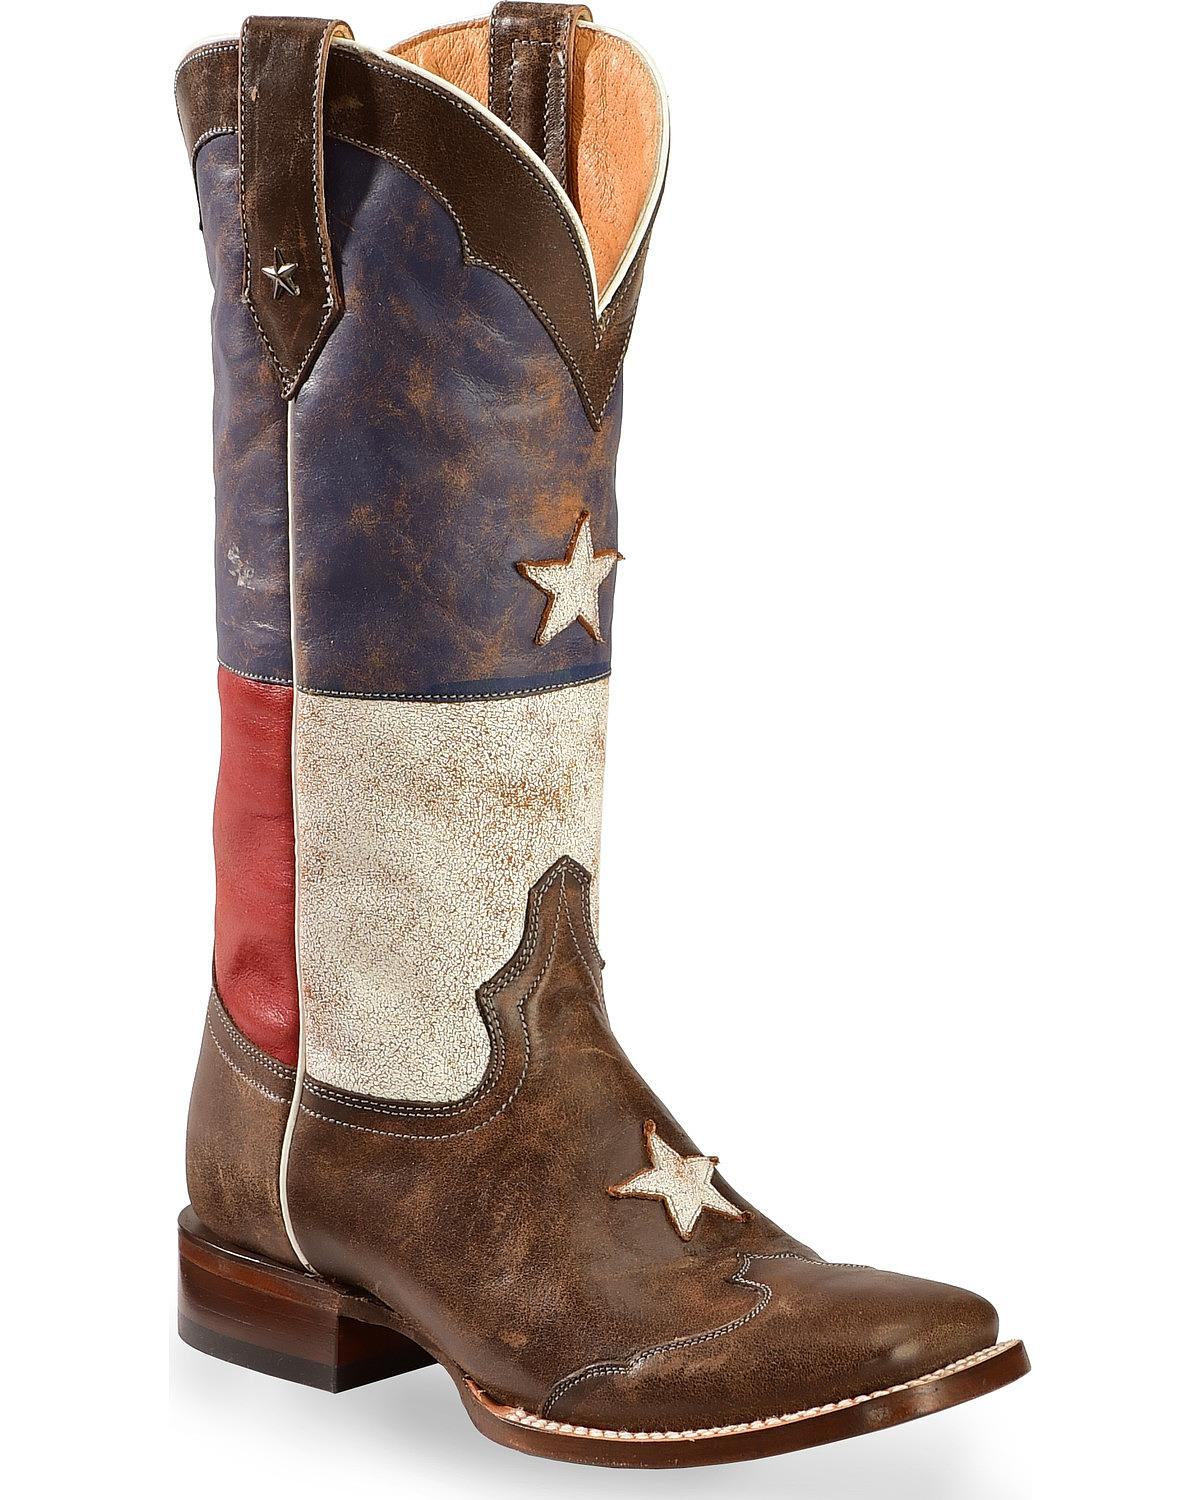 Roper Distressed Texas Flag Cowgirl Boot - Square Toe - 09-021-7001-0203